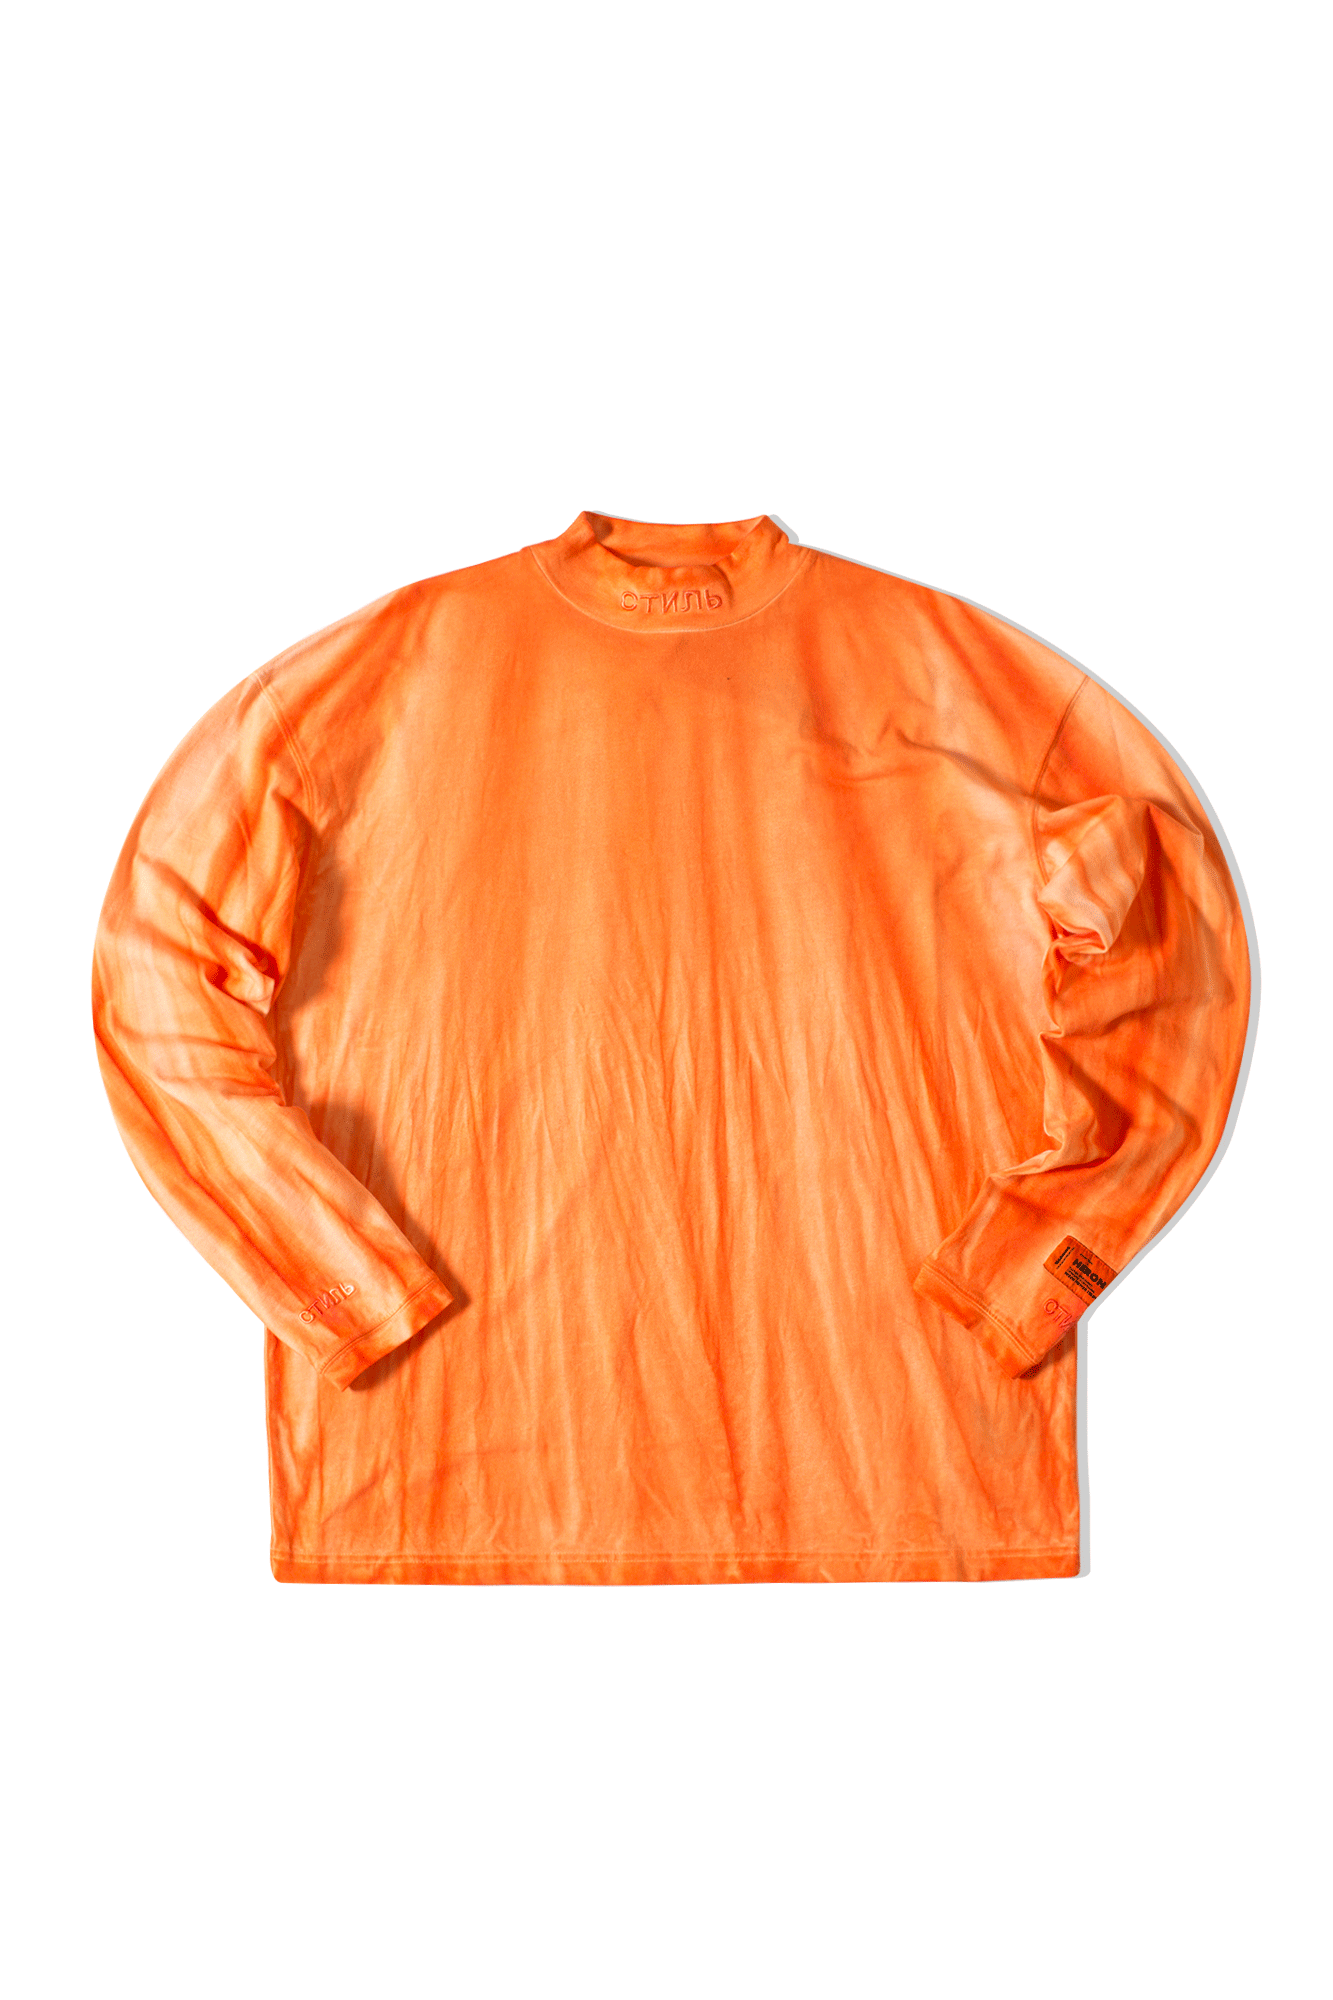 Turtleneck CTNMB Orange